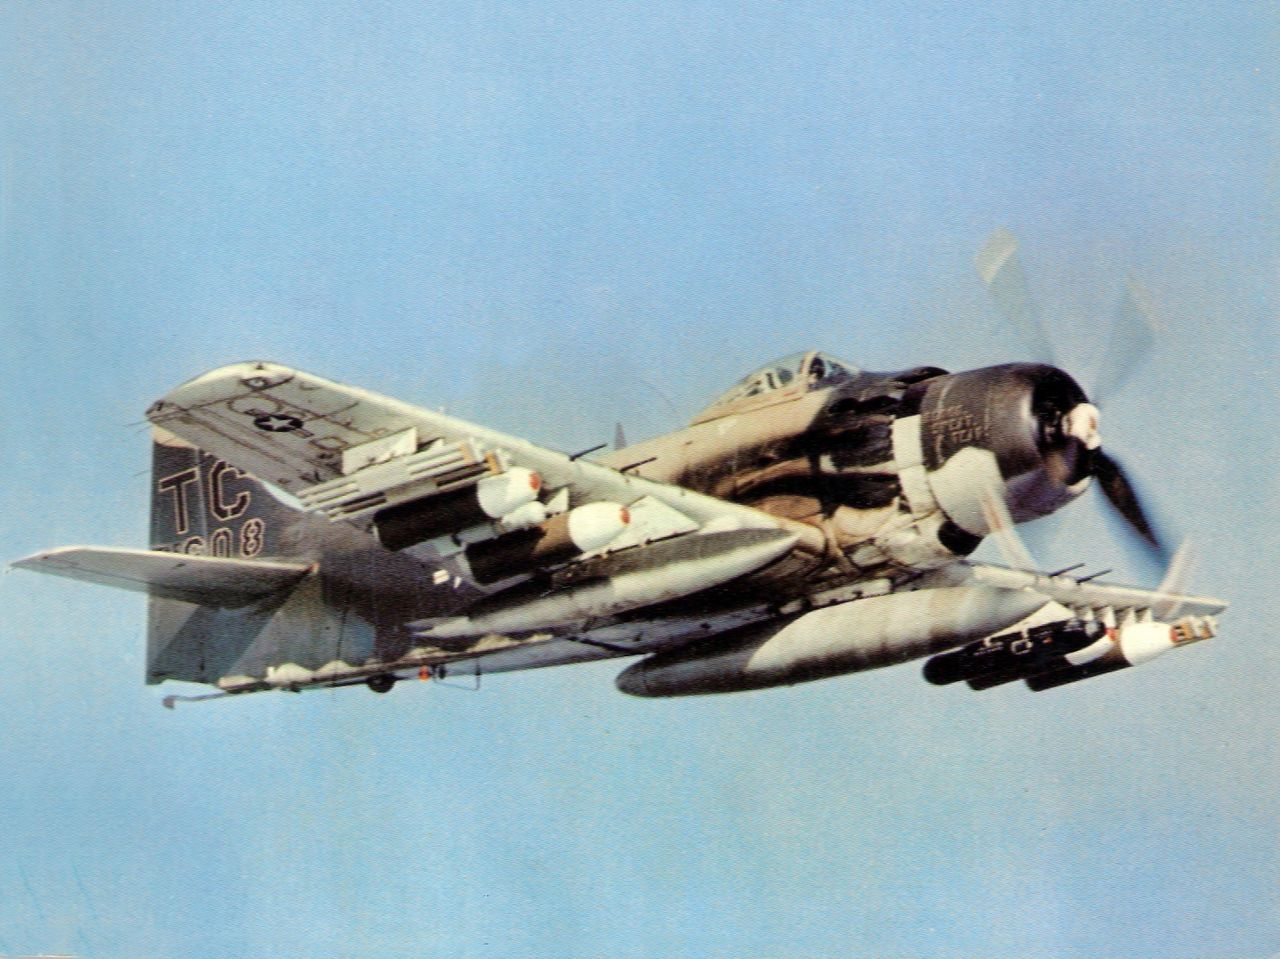 This Cool Photo features the Impressive Ordnance Load Carried by an A-1 Skyraider during a Sandy Mission